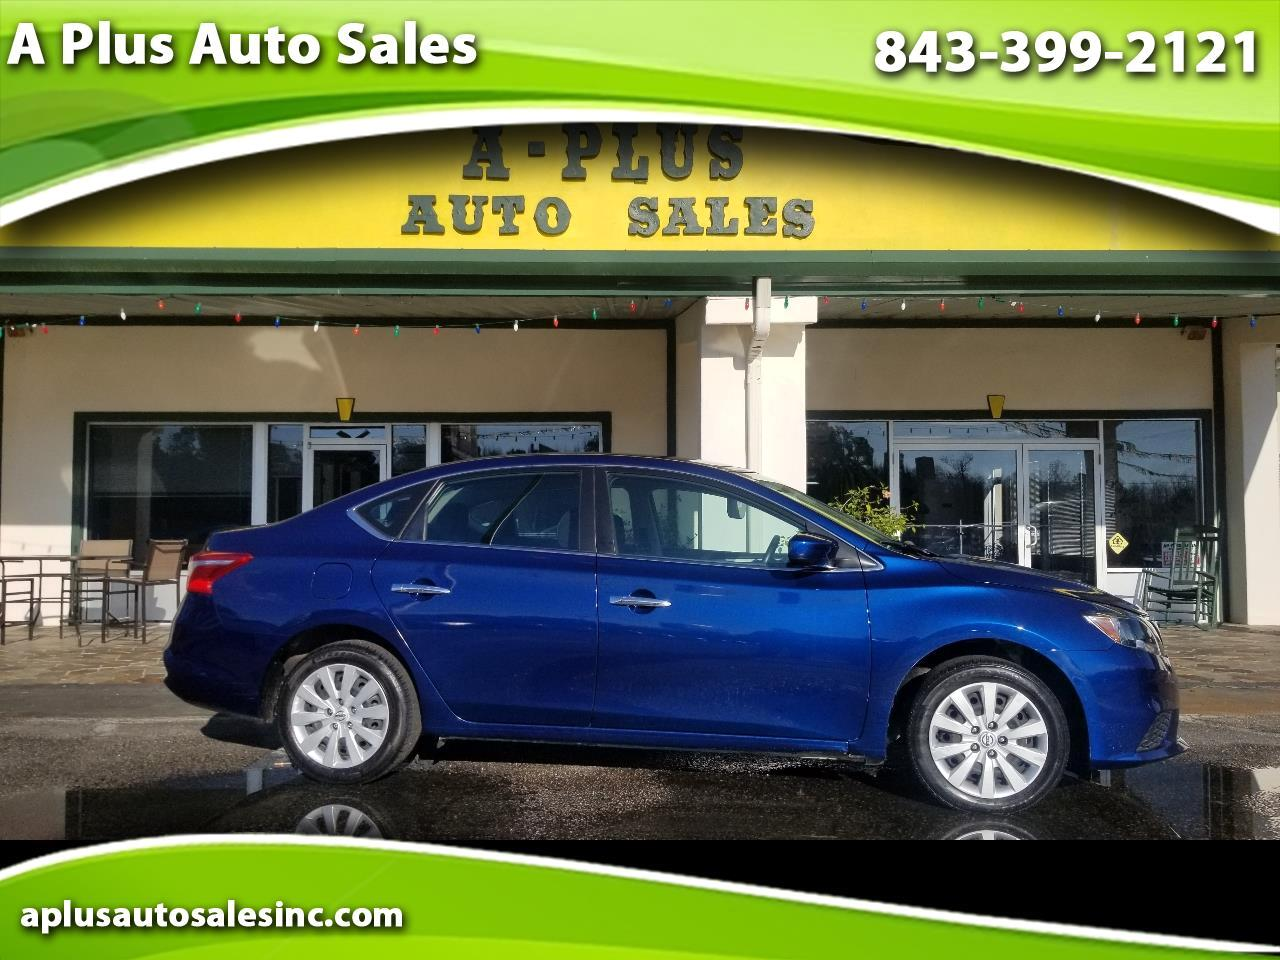 Used 2019 Nissan Sentra S Cvt For Sale In Little River Sc 29566 A Plus Auto Sales